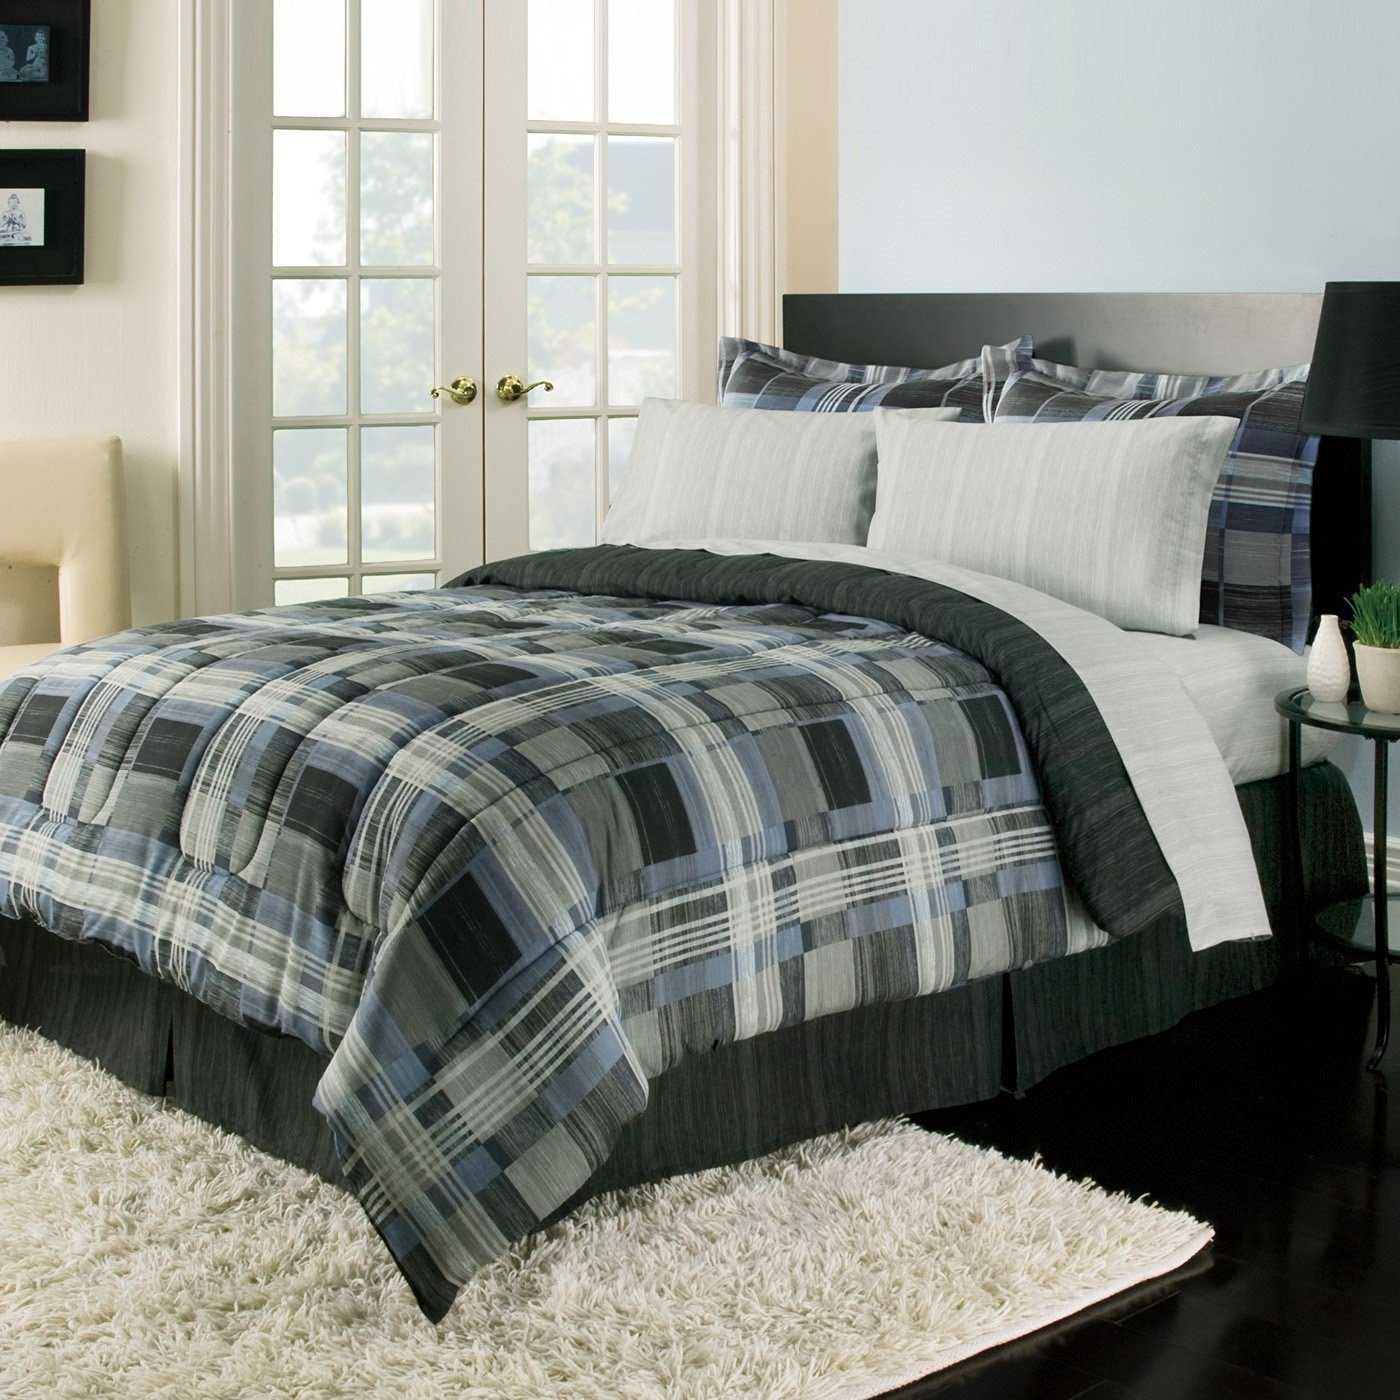 Royal 8 Piece Full Blue Plaid Comforter Set Black Grey, Reversible Bedding with Sheet Set, Stripe Plaid Squares Pattern, Modern & Classic